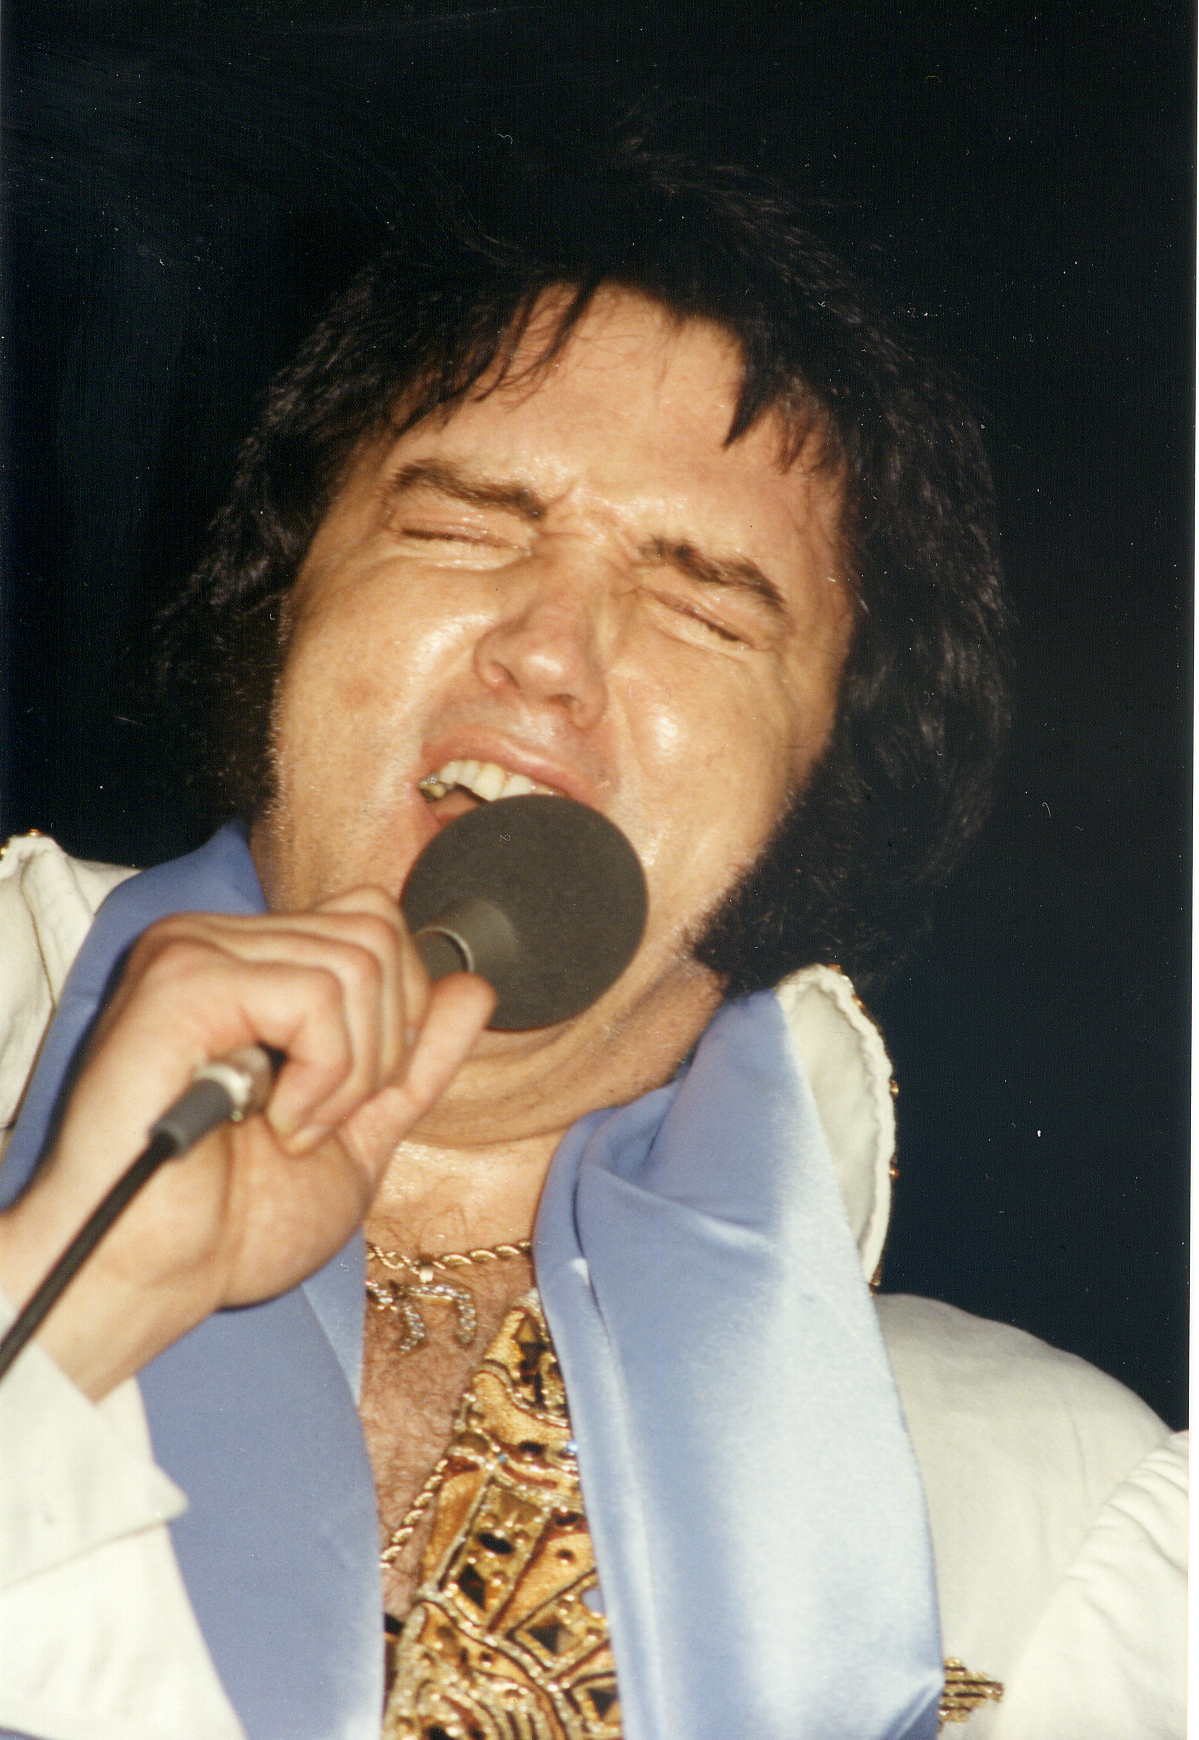 https://i0.wp.com/www.elvisconcerts.com/pictures/s77052205.jpg